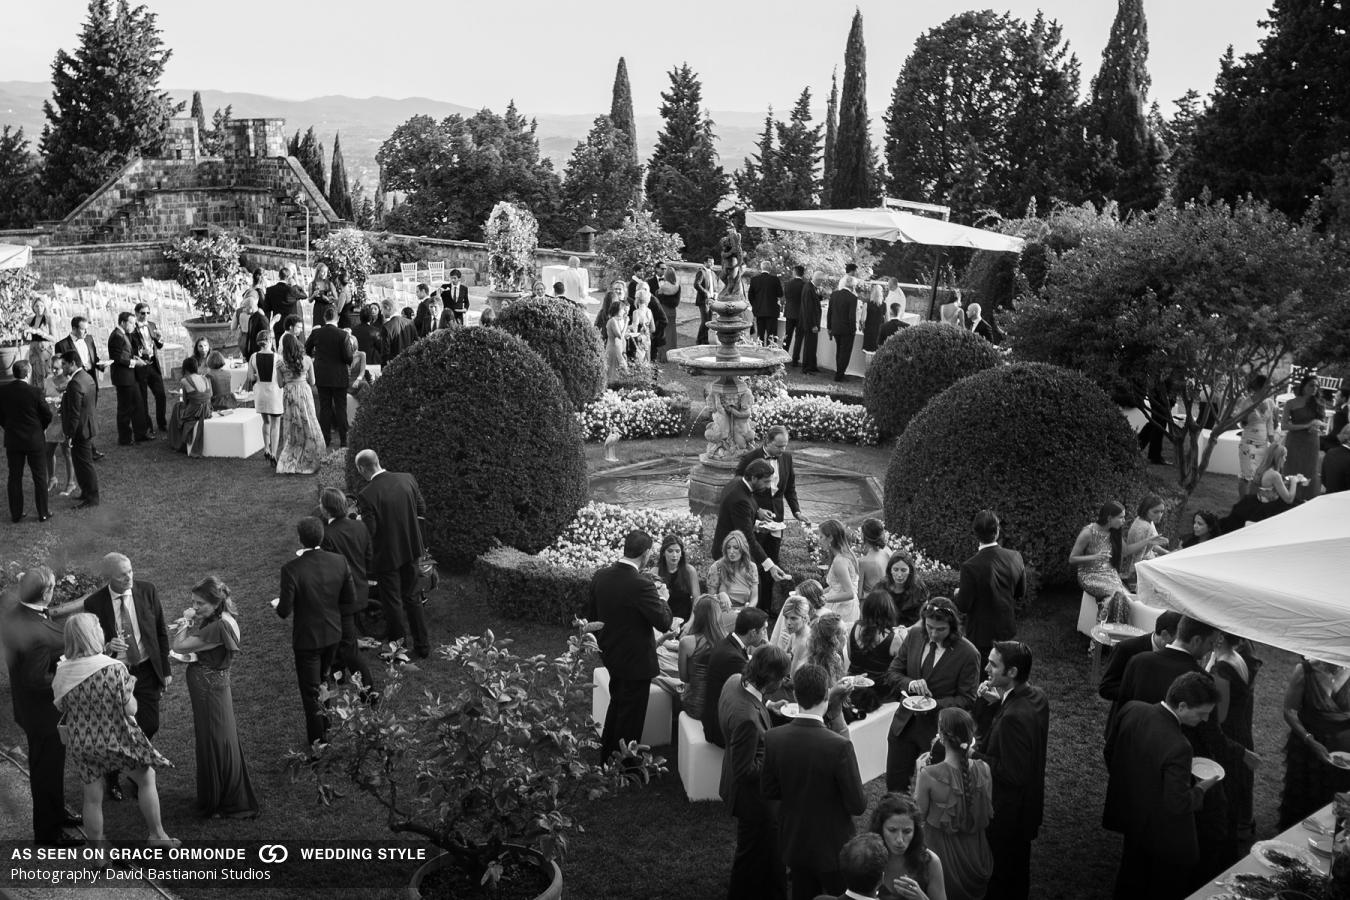 david-bastianoni-wedding-2015-08_0 :: Grace Ormonde :: Luxury wedding photography - 3 :: david-bastianoni-wedding-2015-08_0